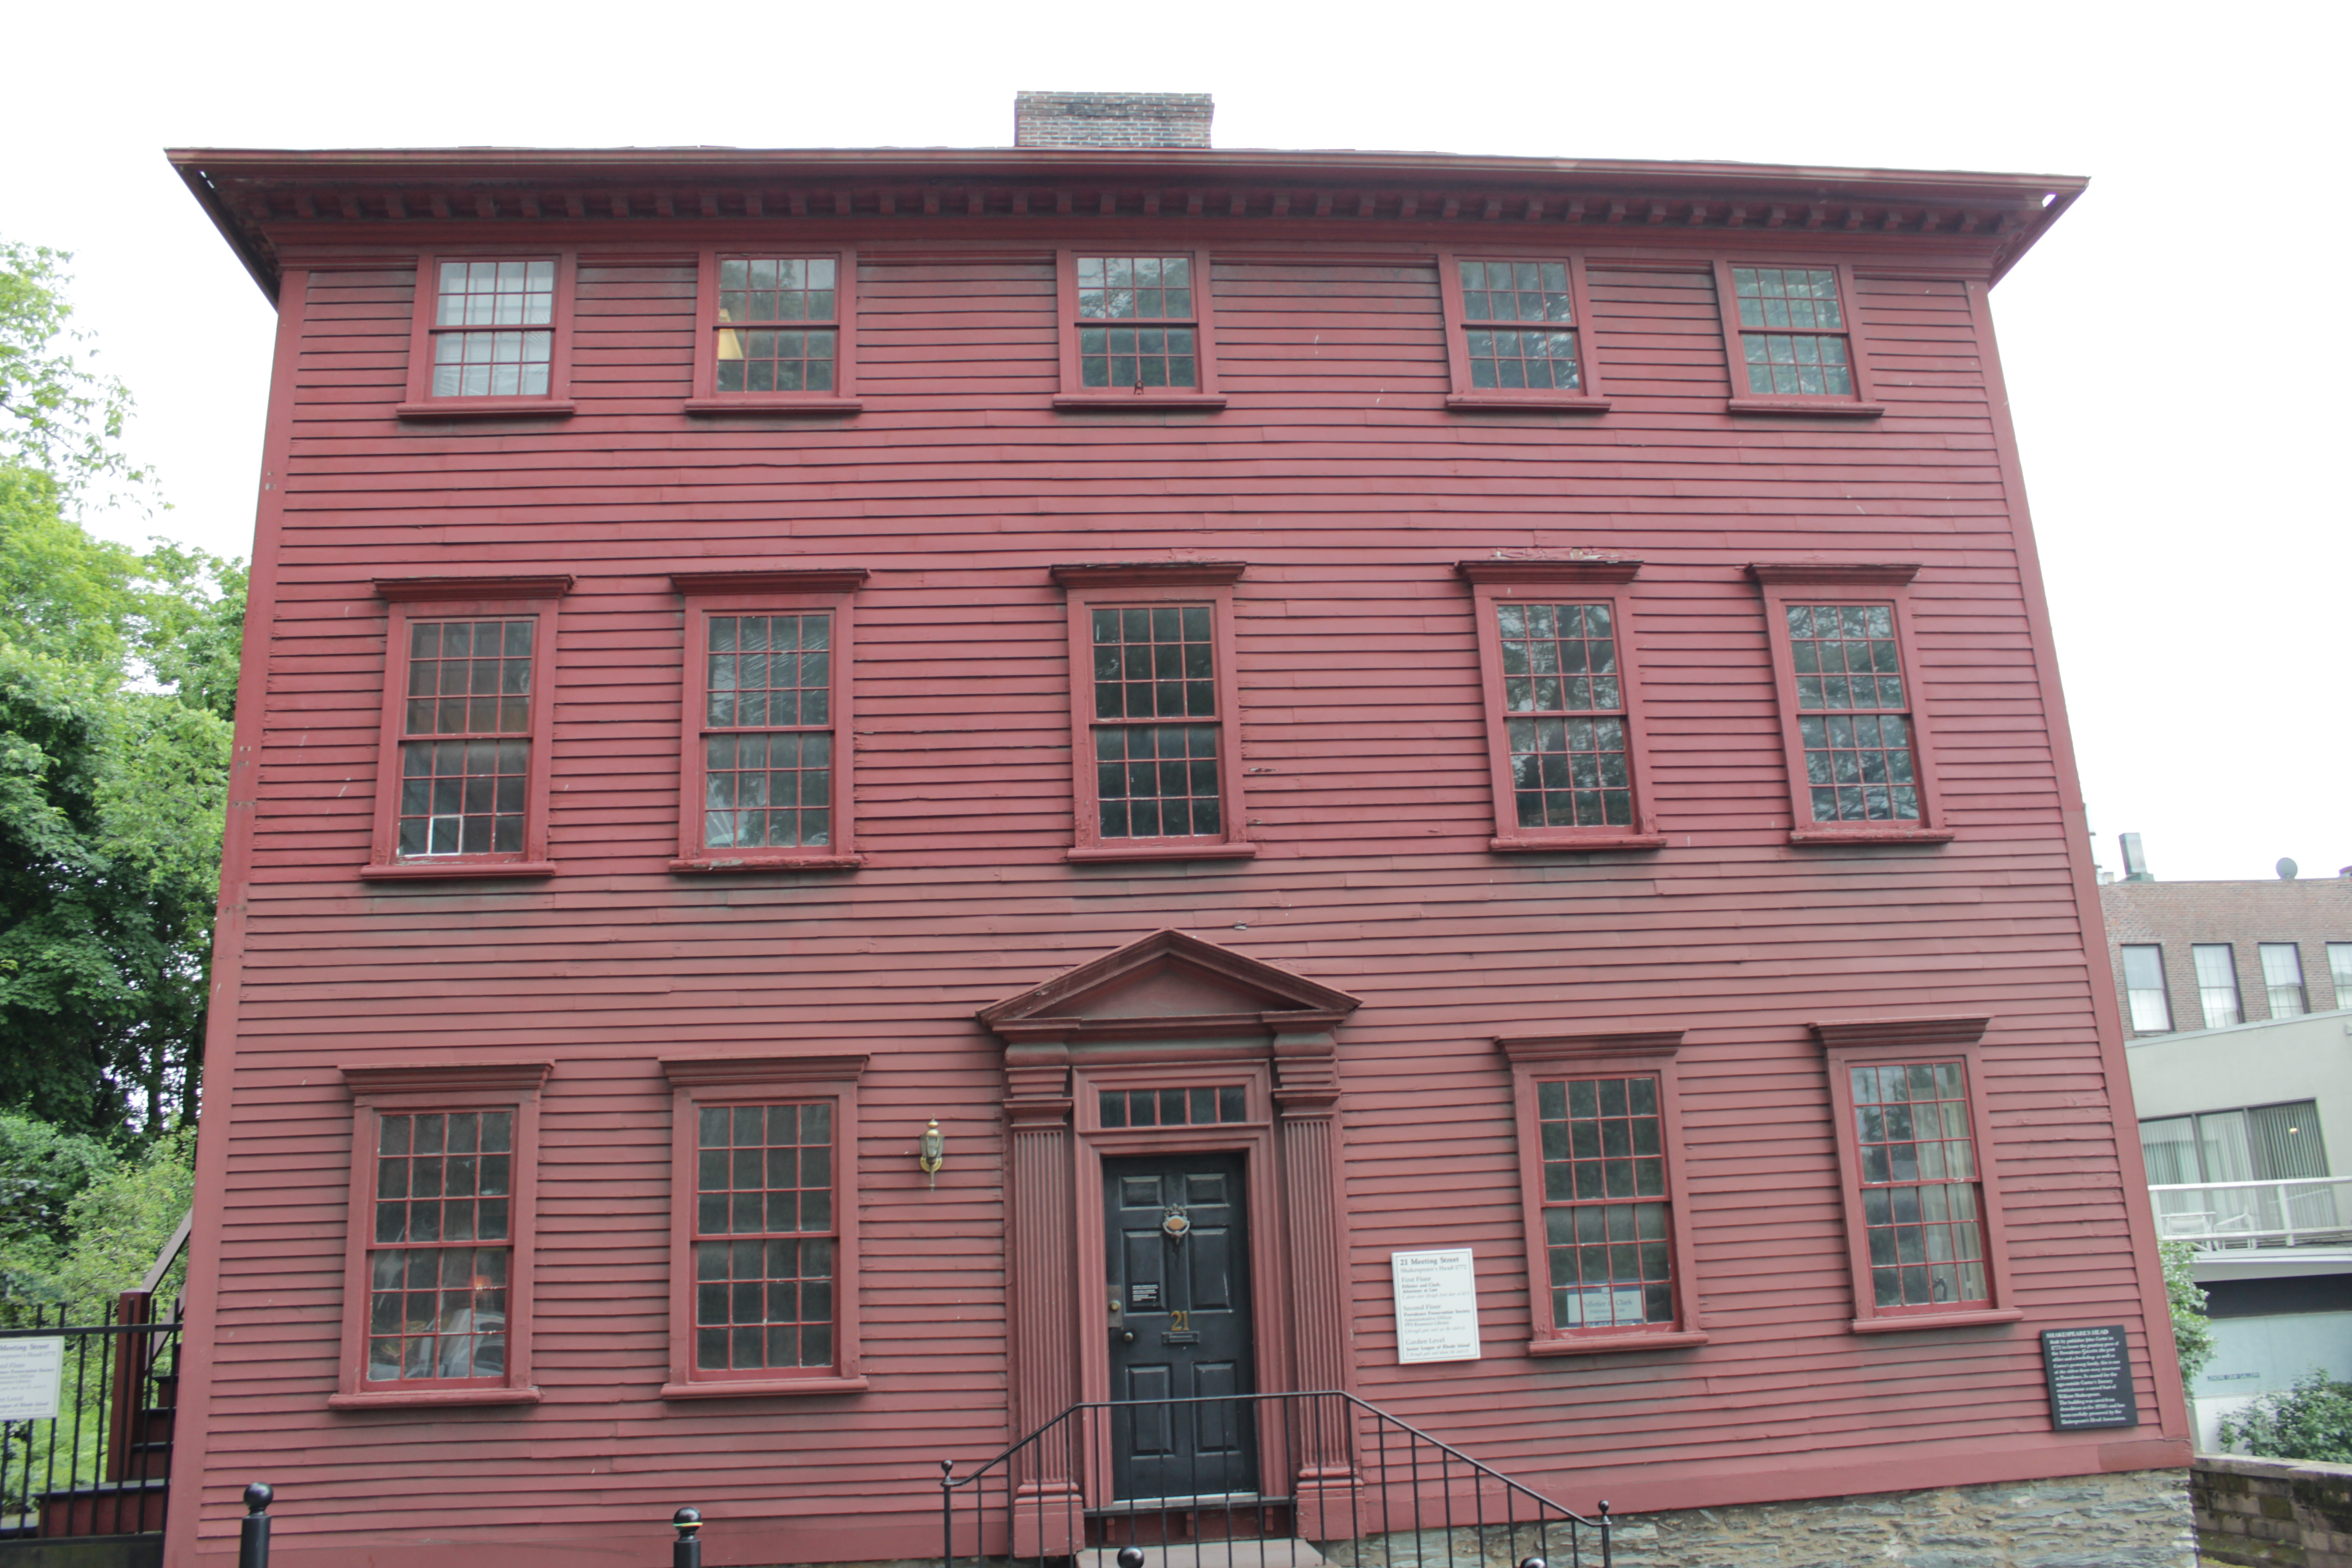 Shakespeare's Head building, also known as the John Carter House (image from Historic Markers Database)